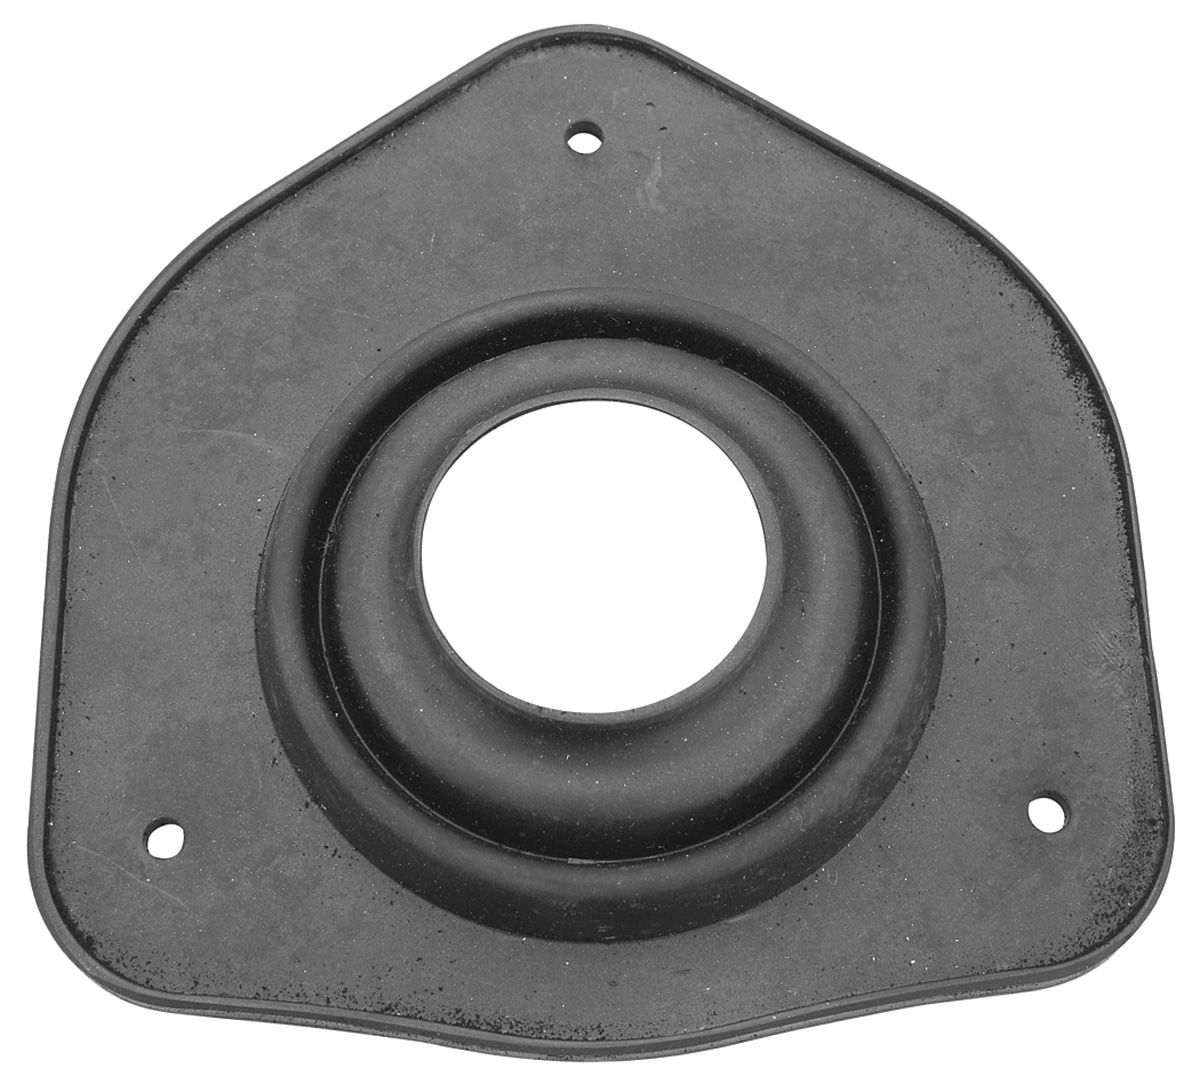 Seal, Steering Column To Firewall, 1956-58 Cadillac